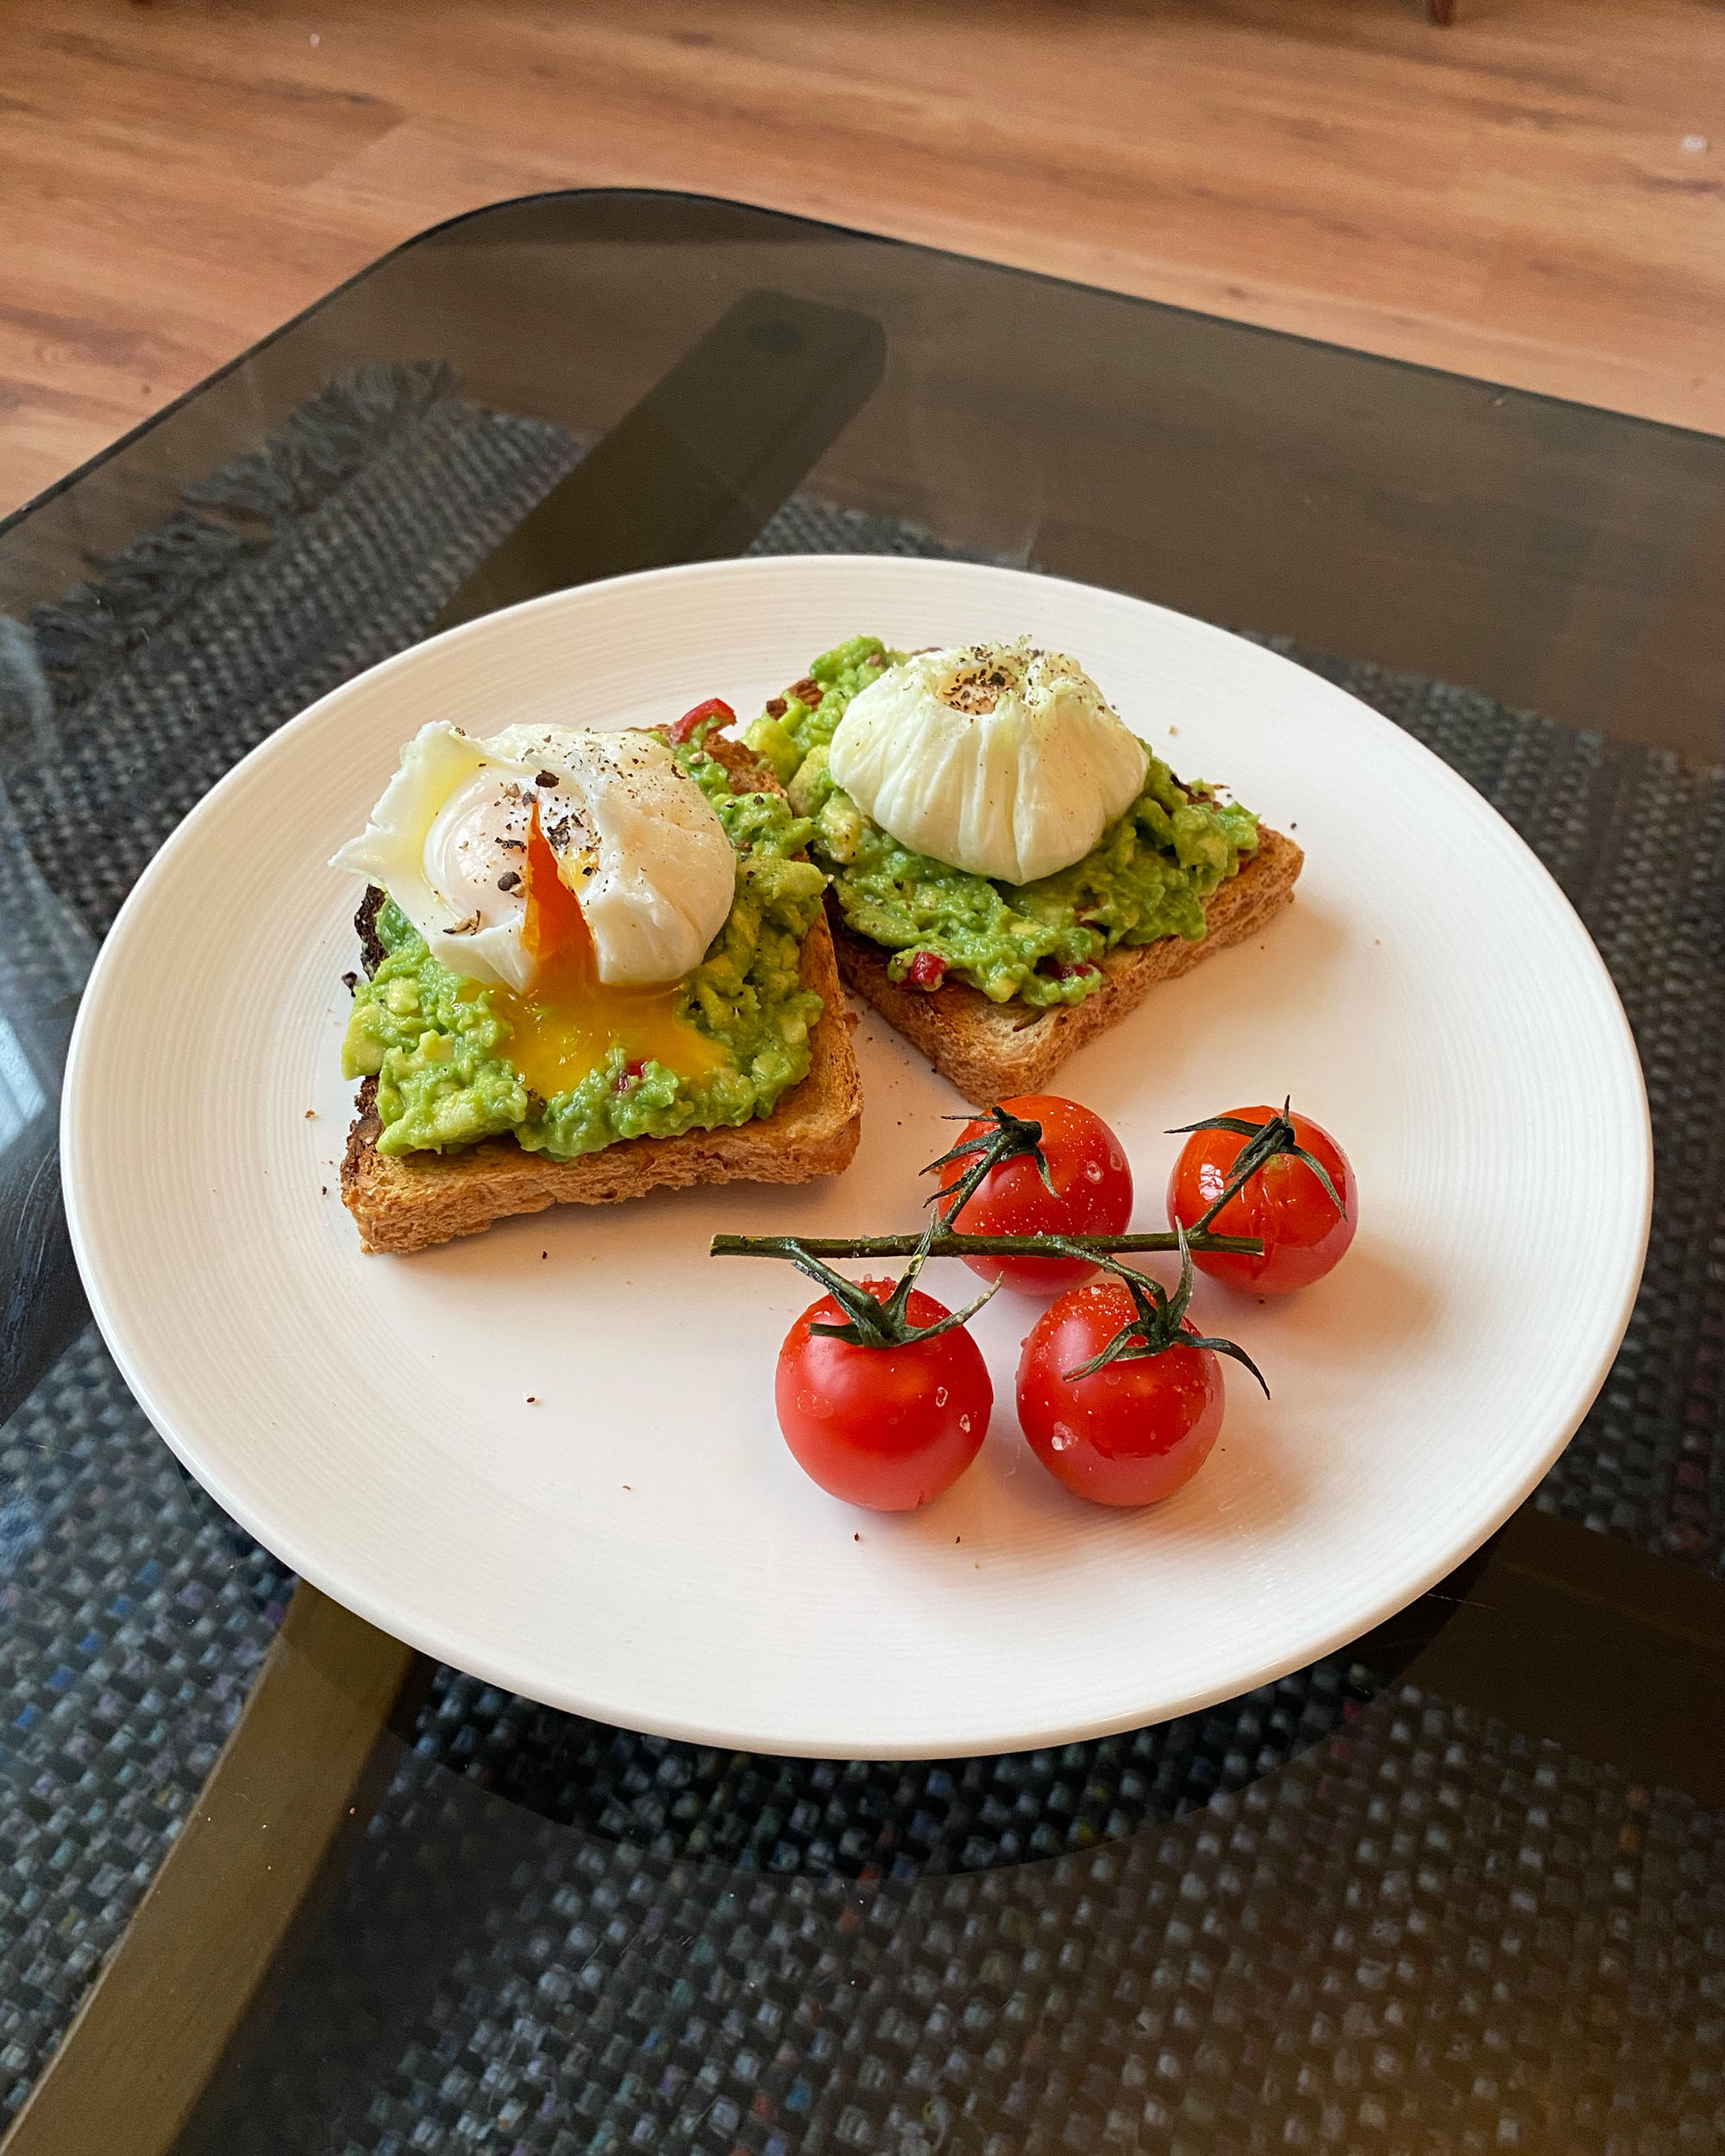 Original Smashed Avocado on Toast